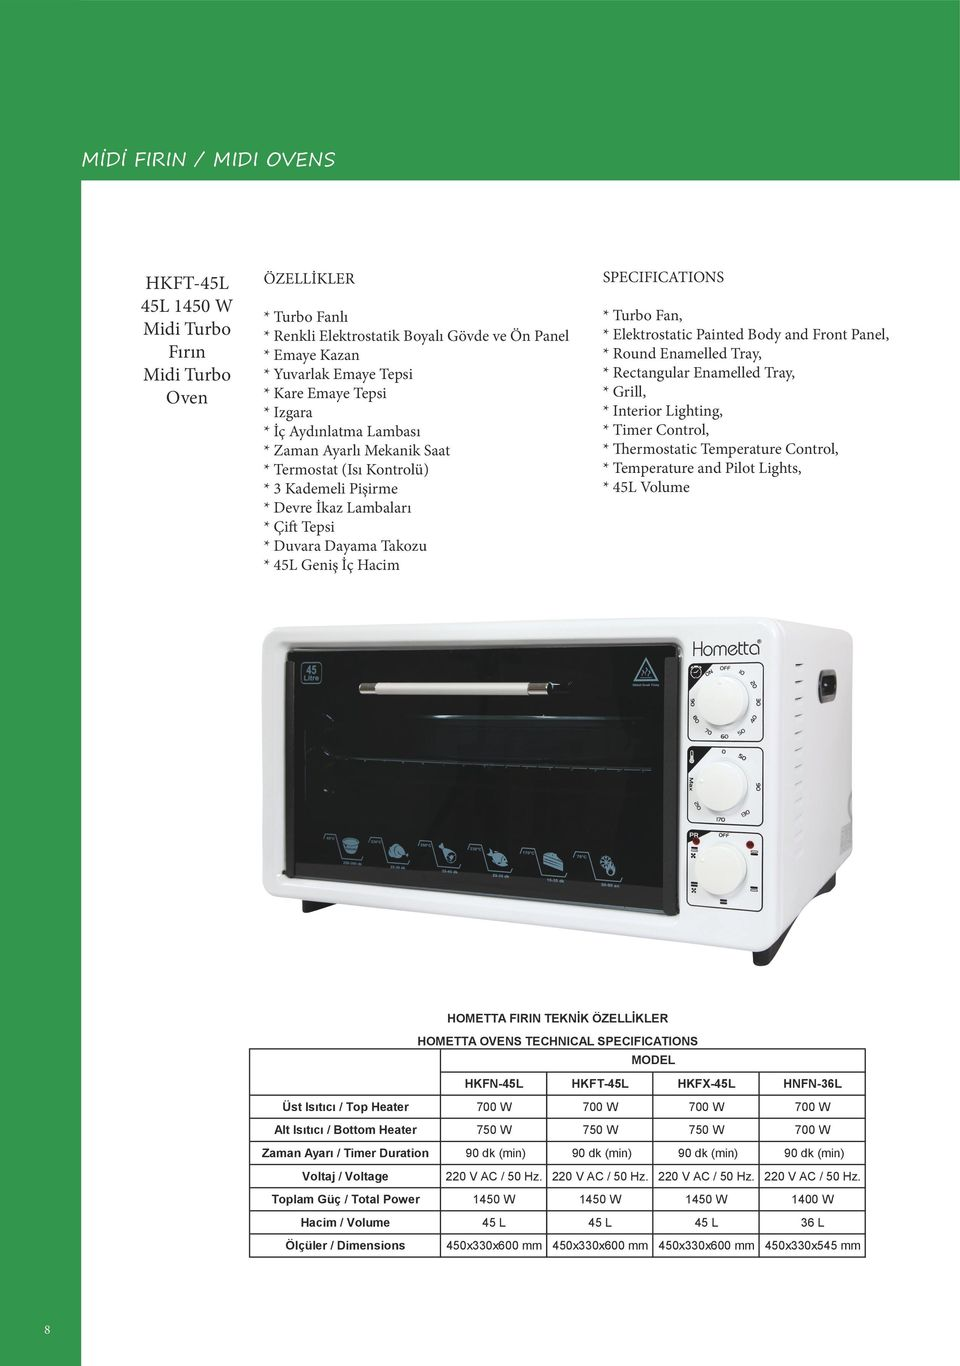 SPECIFICATIONS * Turbo Fan, * Elektrostatic Painted Body and Front Panel, * Round Enamelled Tray, * Rectangular Enamelled Tray, * Grill, * Interior Lighting, * Timer Control, * Thermostatic